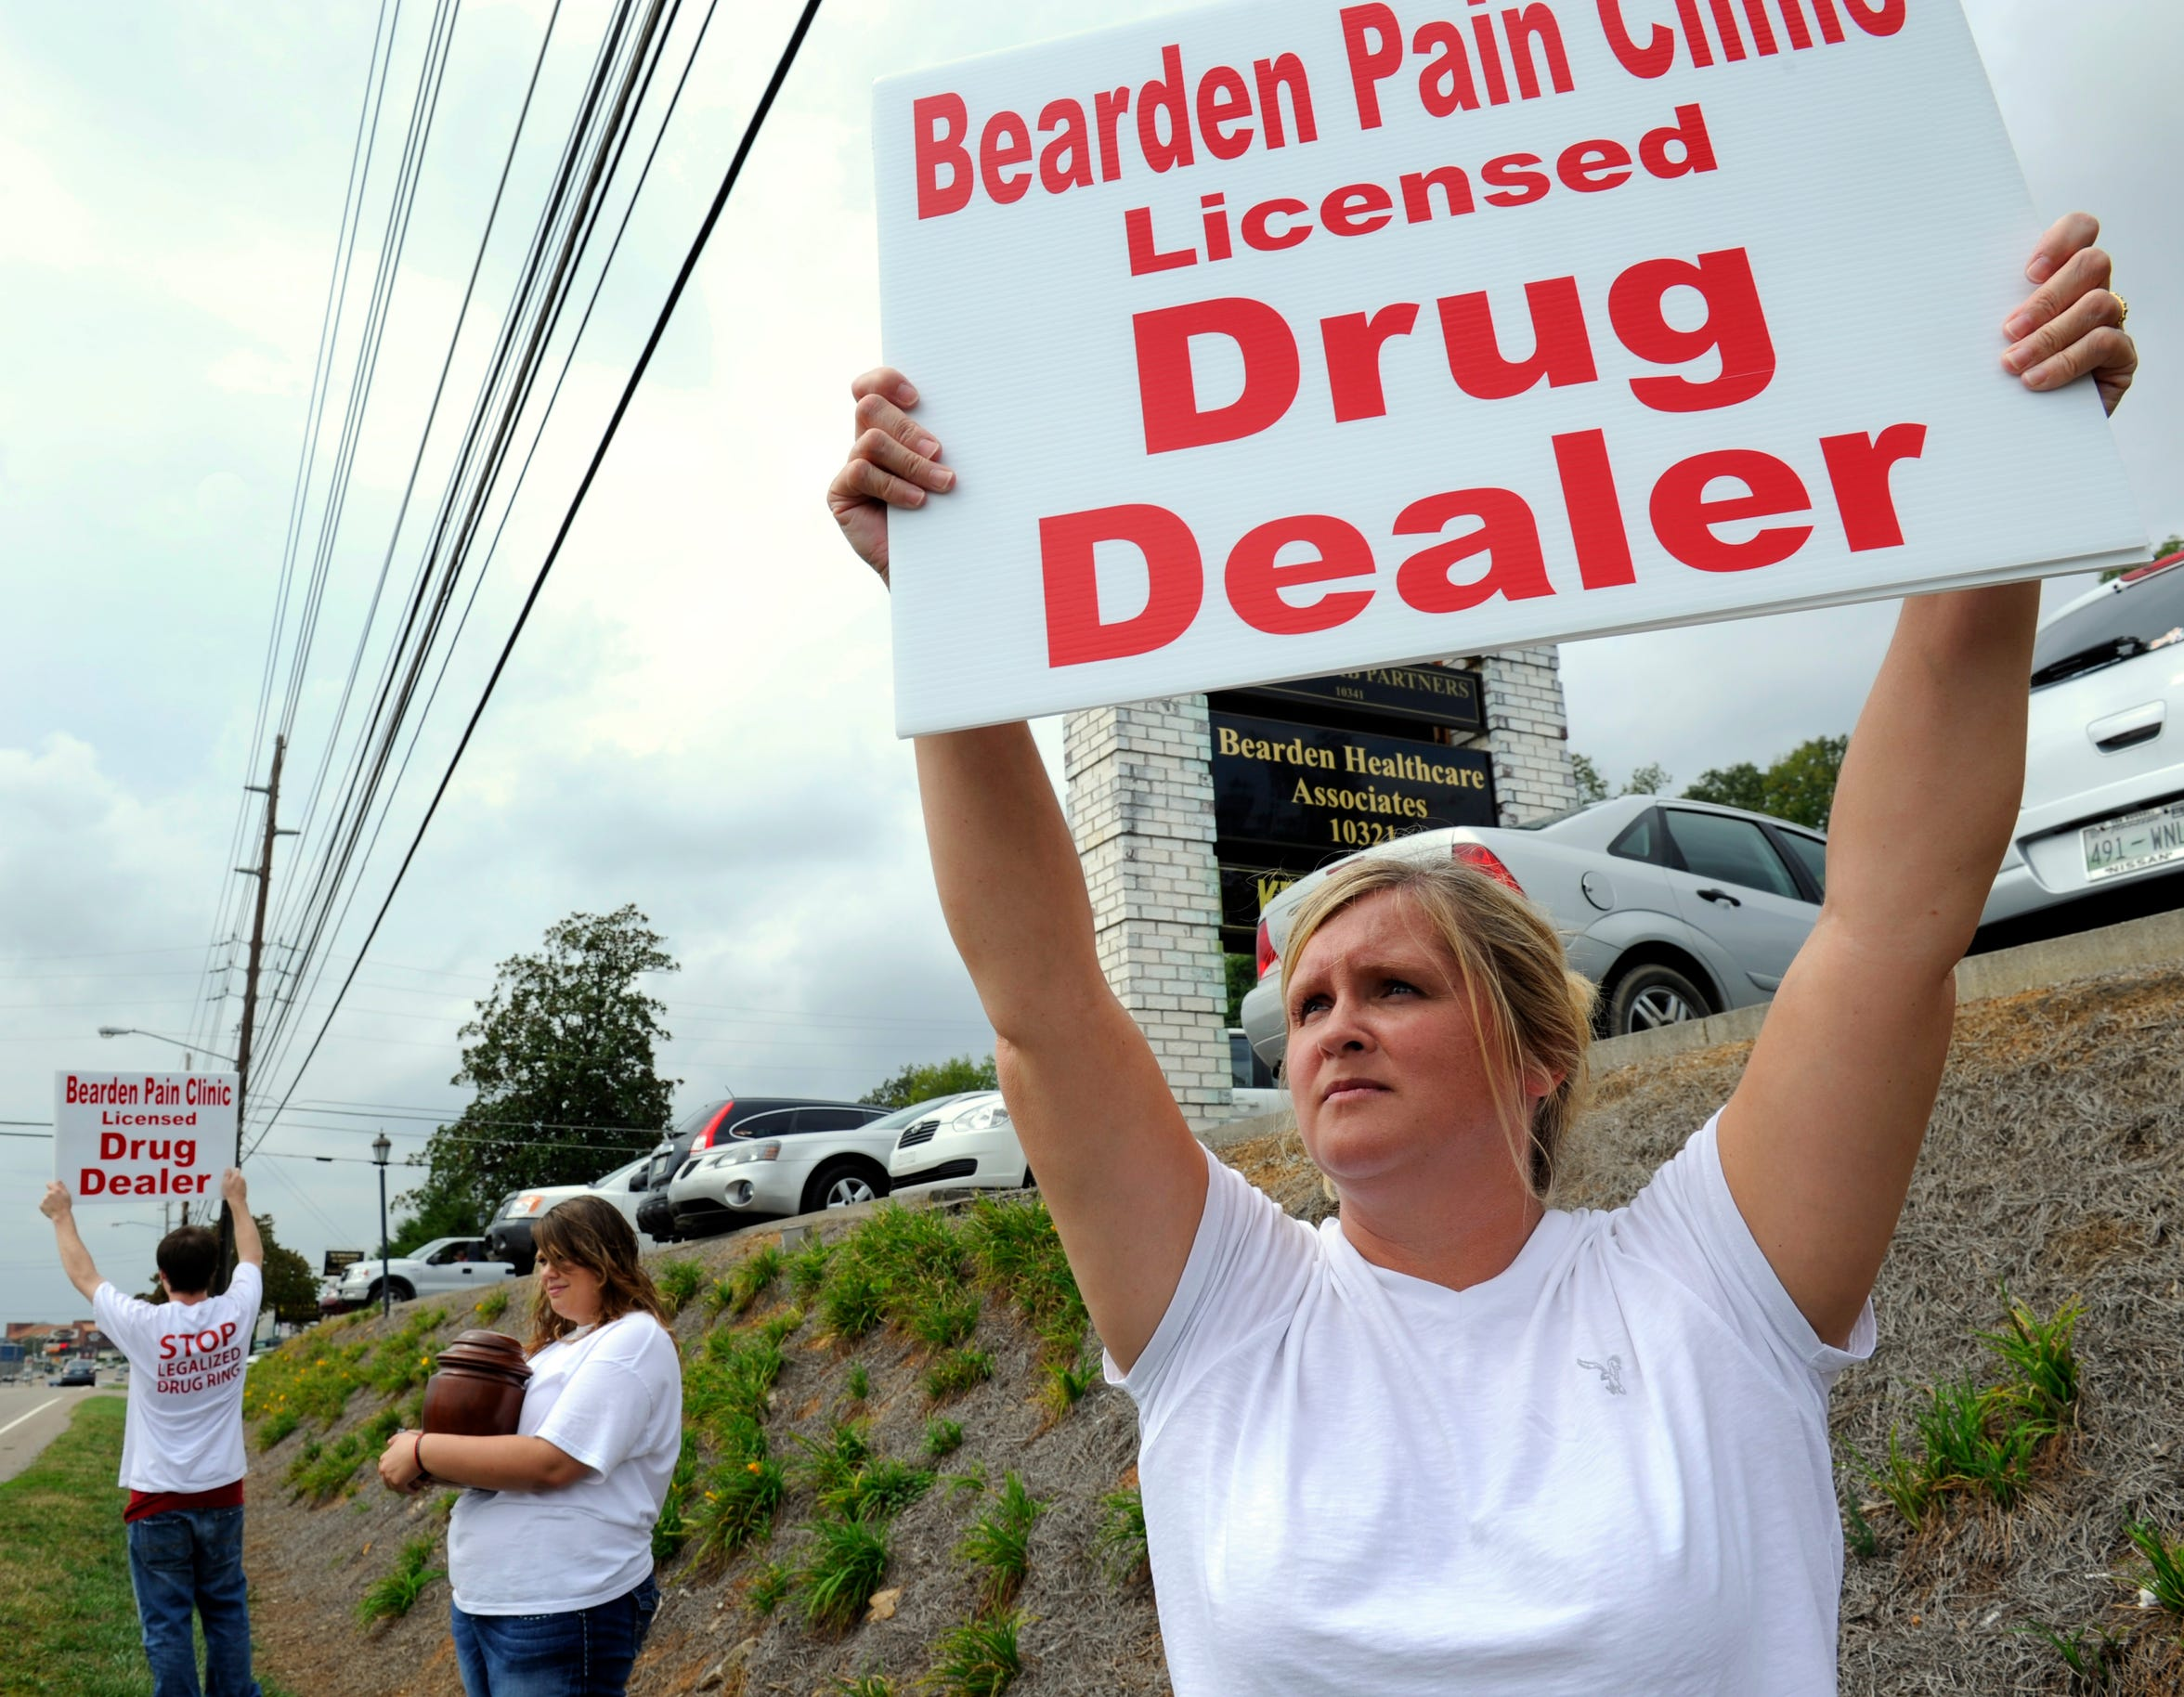 Stephanie Hines protests with family members outside the Bearden clinic Sept. 22, 2011. Hines said the clinic overprescribed pills to her husband, who died that year. The clinic is also where Christina Collins and others once prescribed painkillers by the handful.